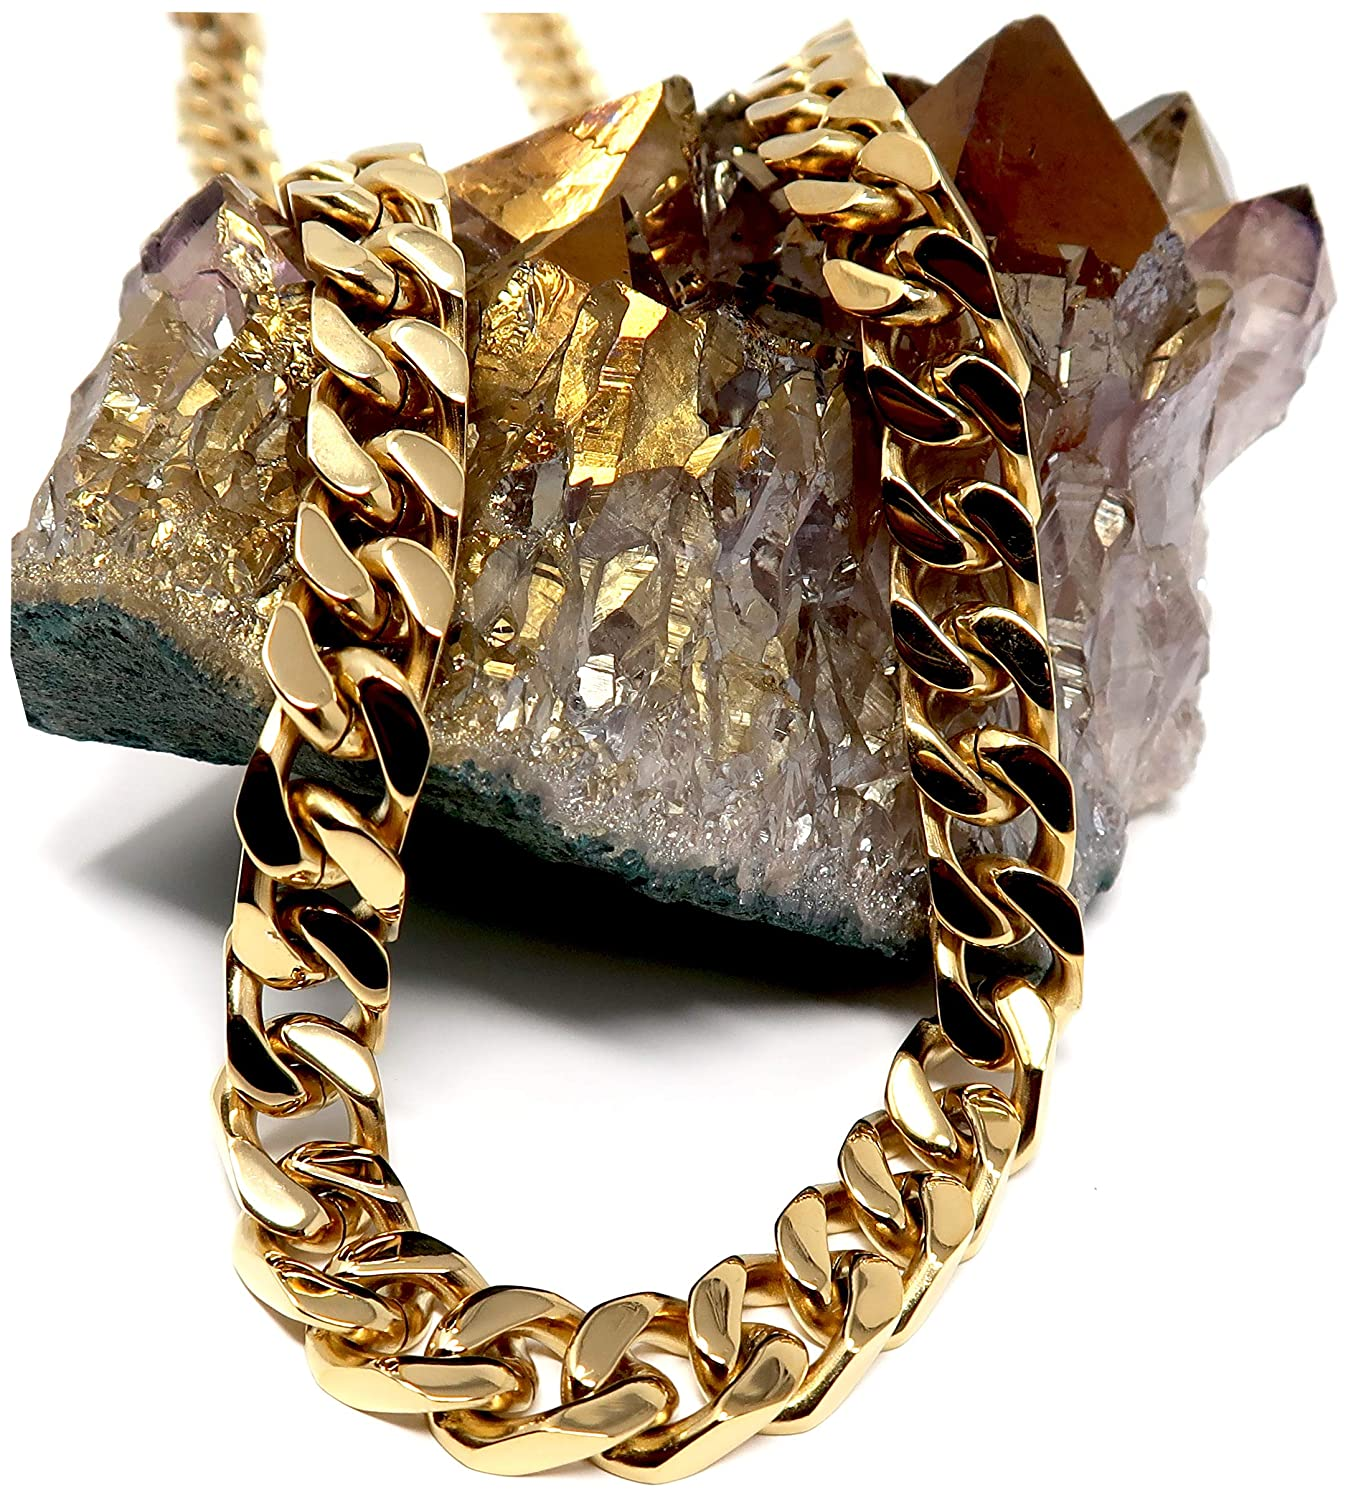 14ct Gold Cuban Link Chain Necklace for Men Real 11MM 14K Karat Diamond Cut Heavy w Solid Thick Clasp US Made